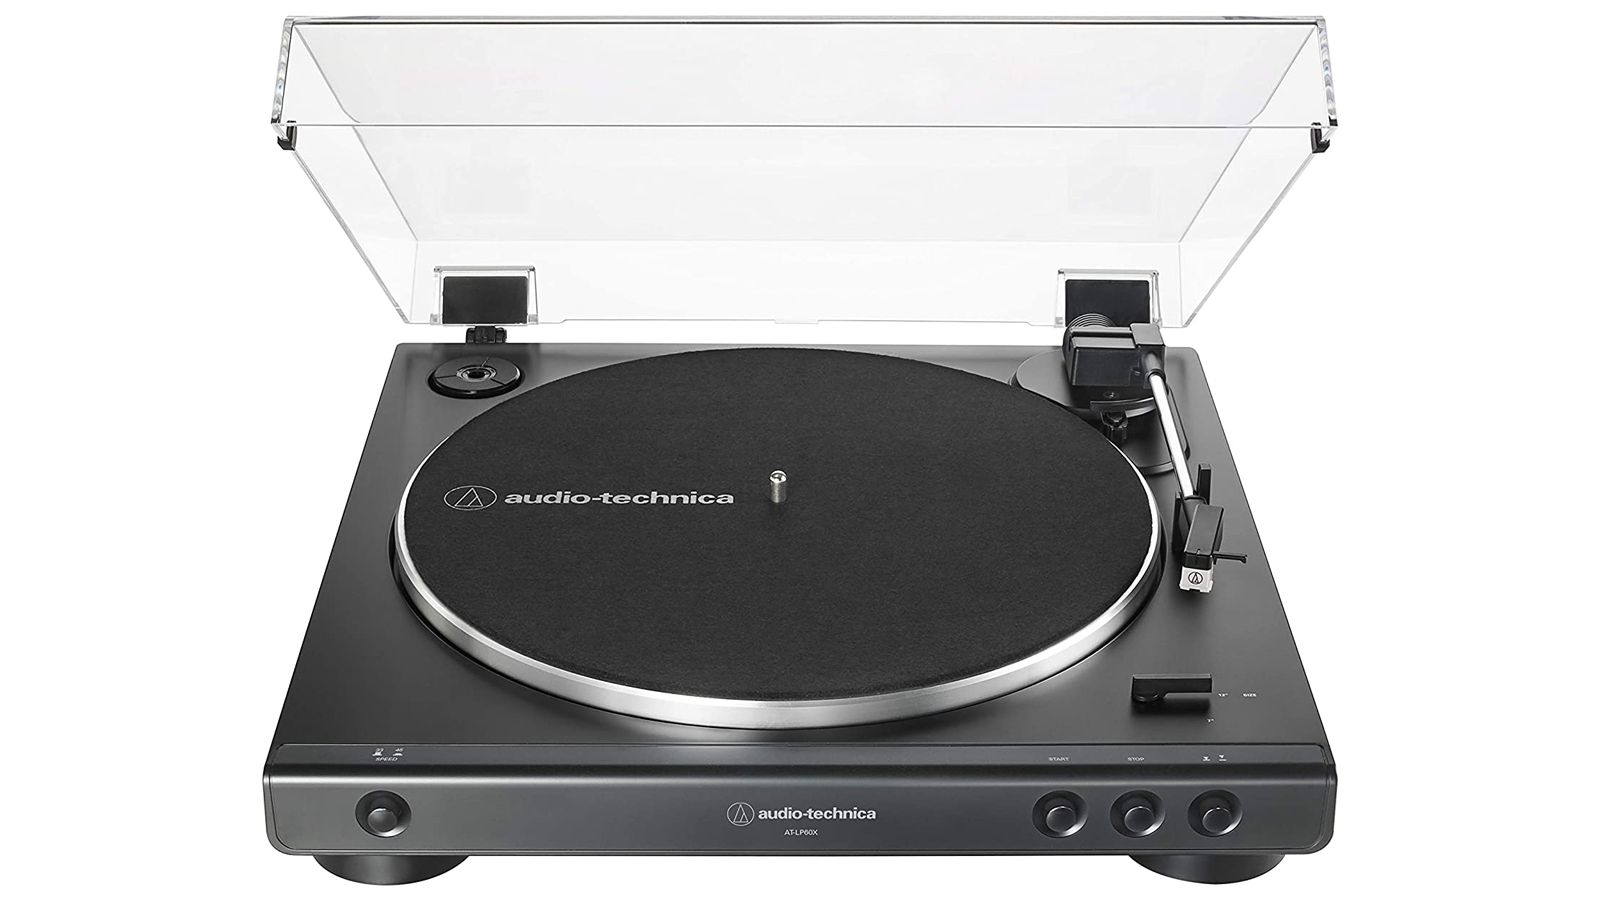 Audio-Technica AT-LP60X automatic turntable belt-driven turntable